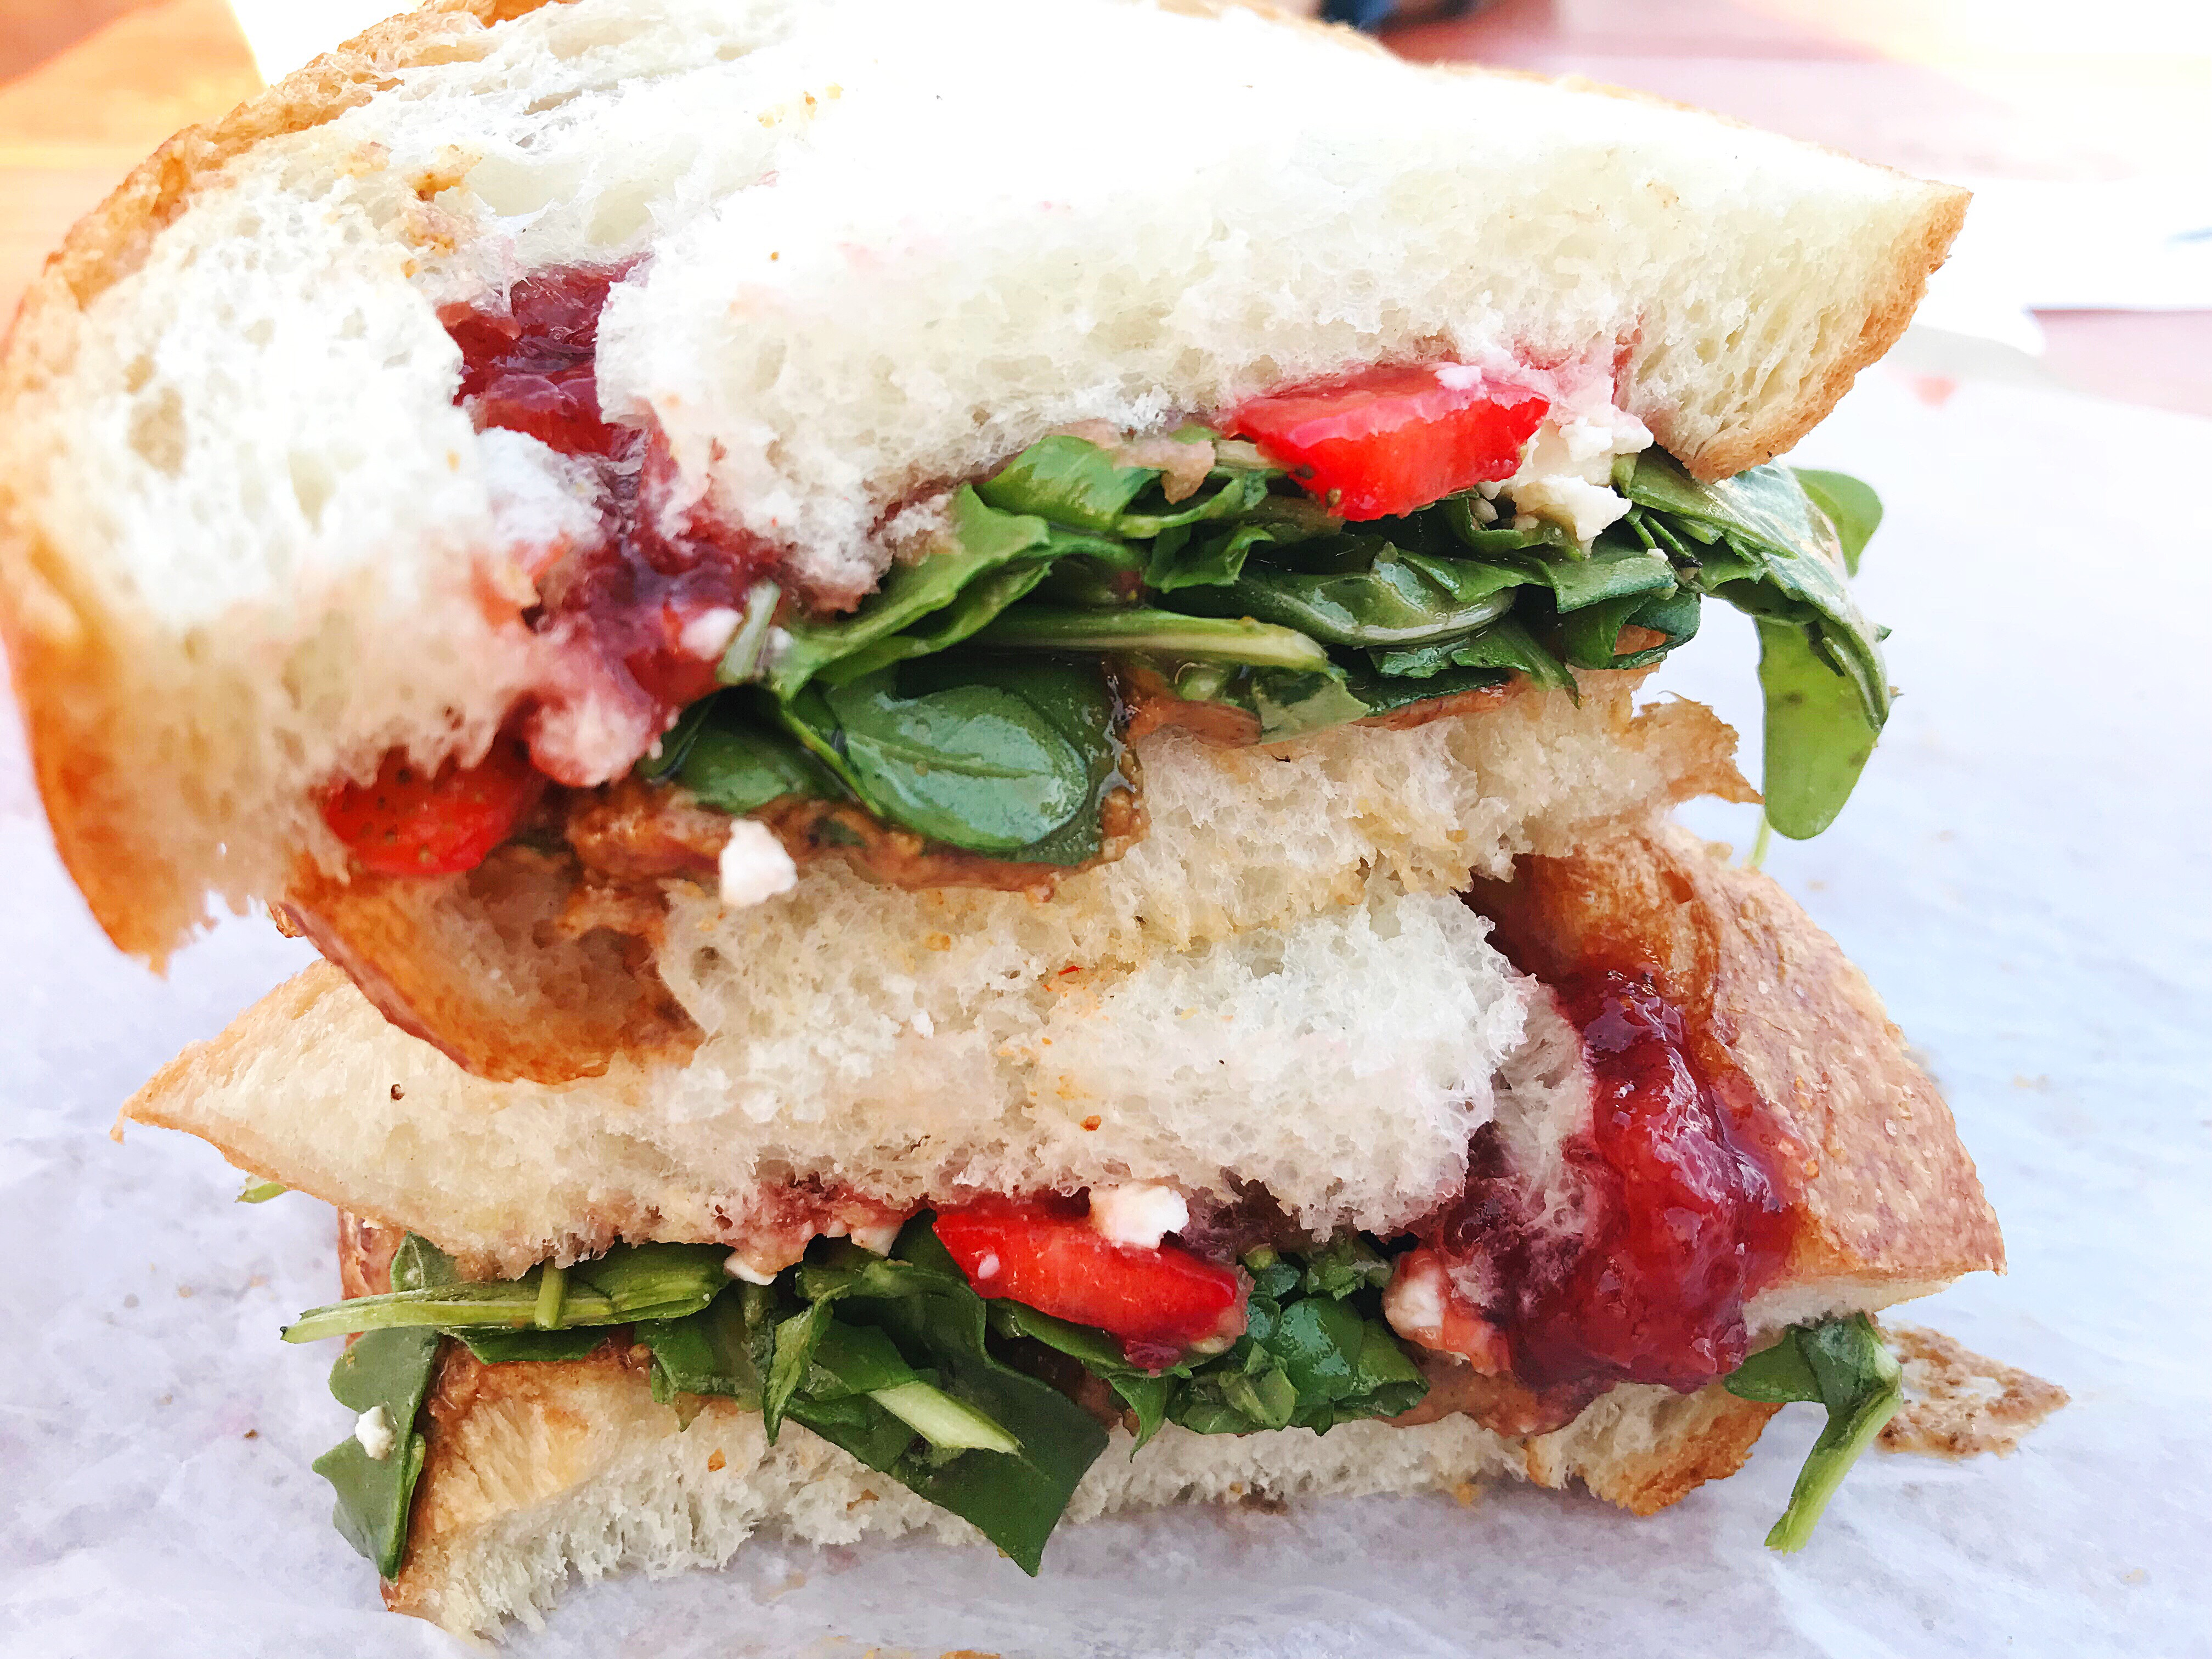 It's More Than Just a Sandwich at the PB and Jelly Deli